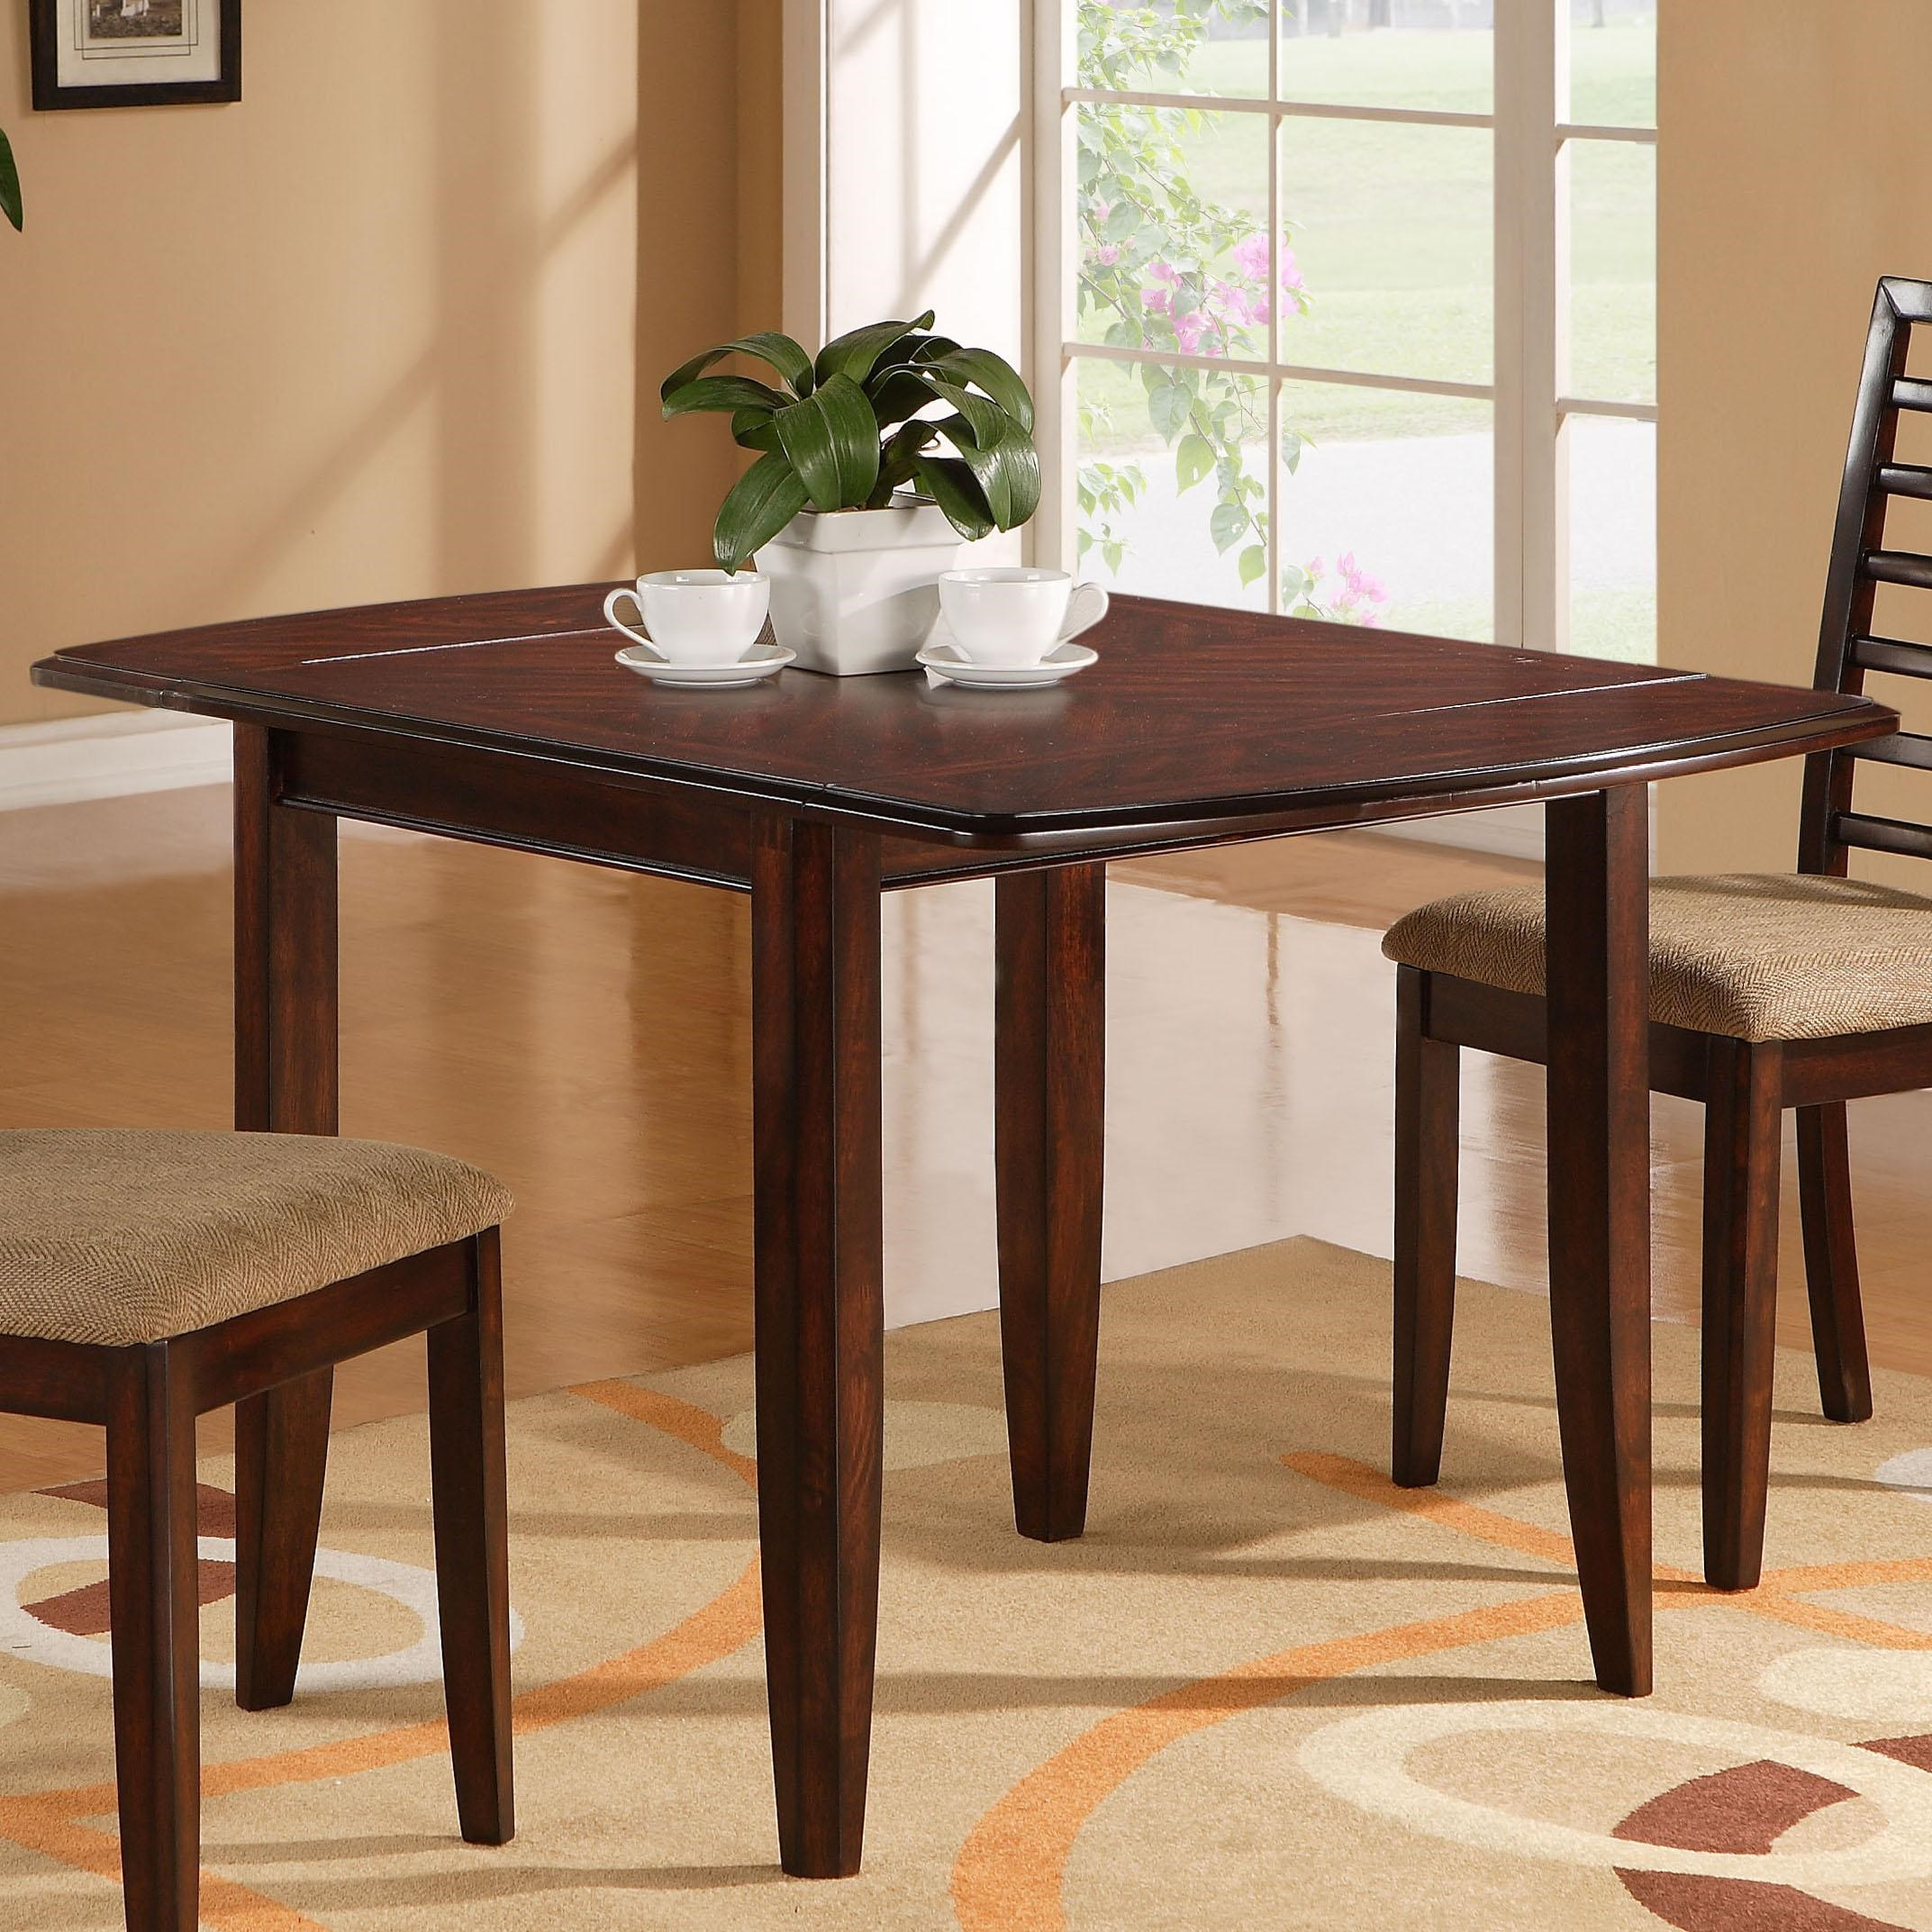 Ivan Drop Leaf Dining Table Walker s Furniture Kitchen